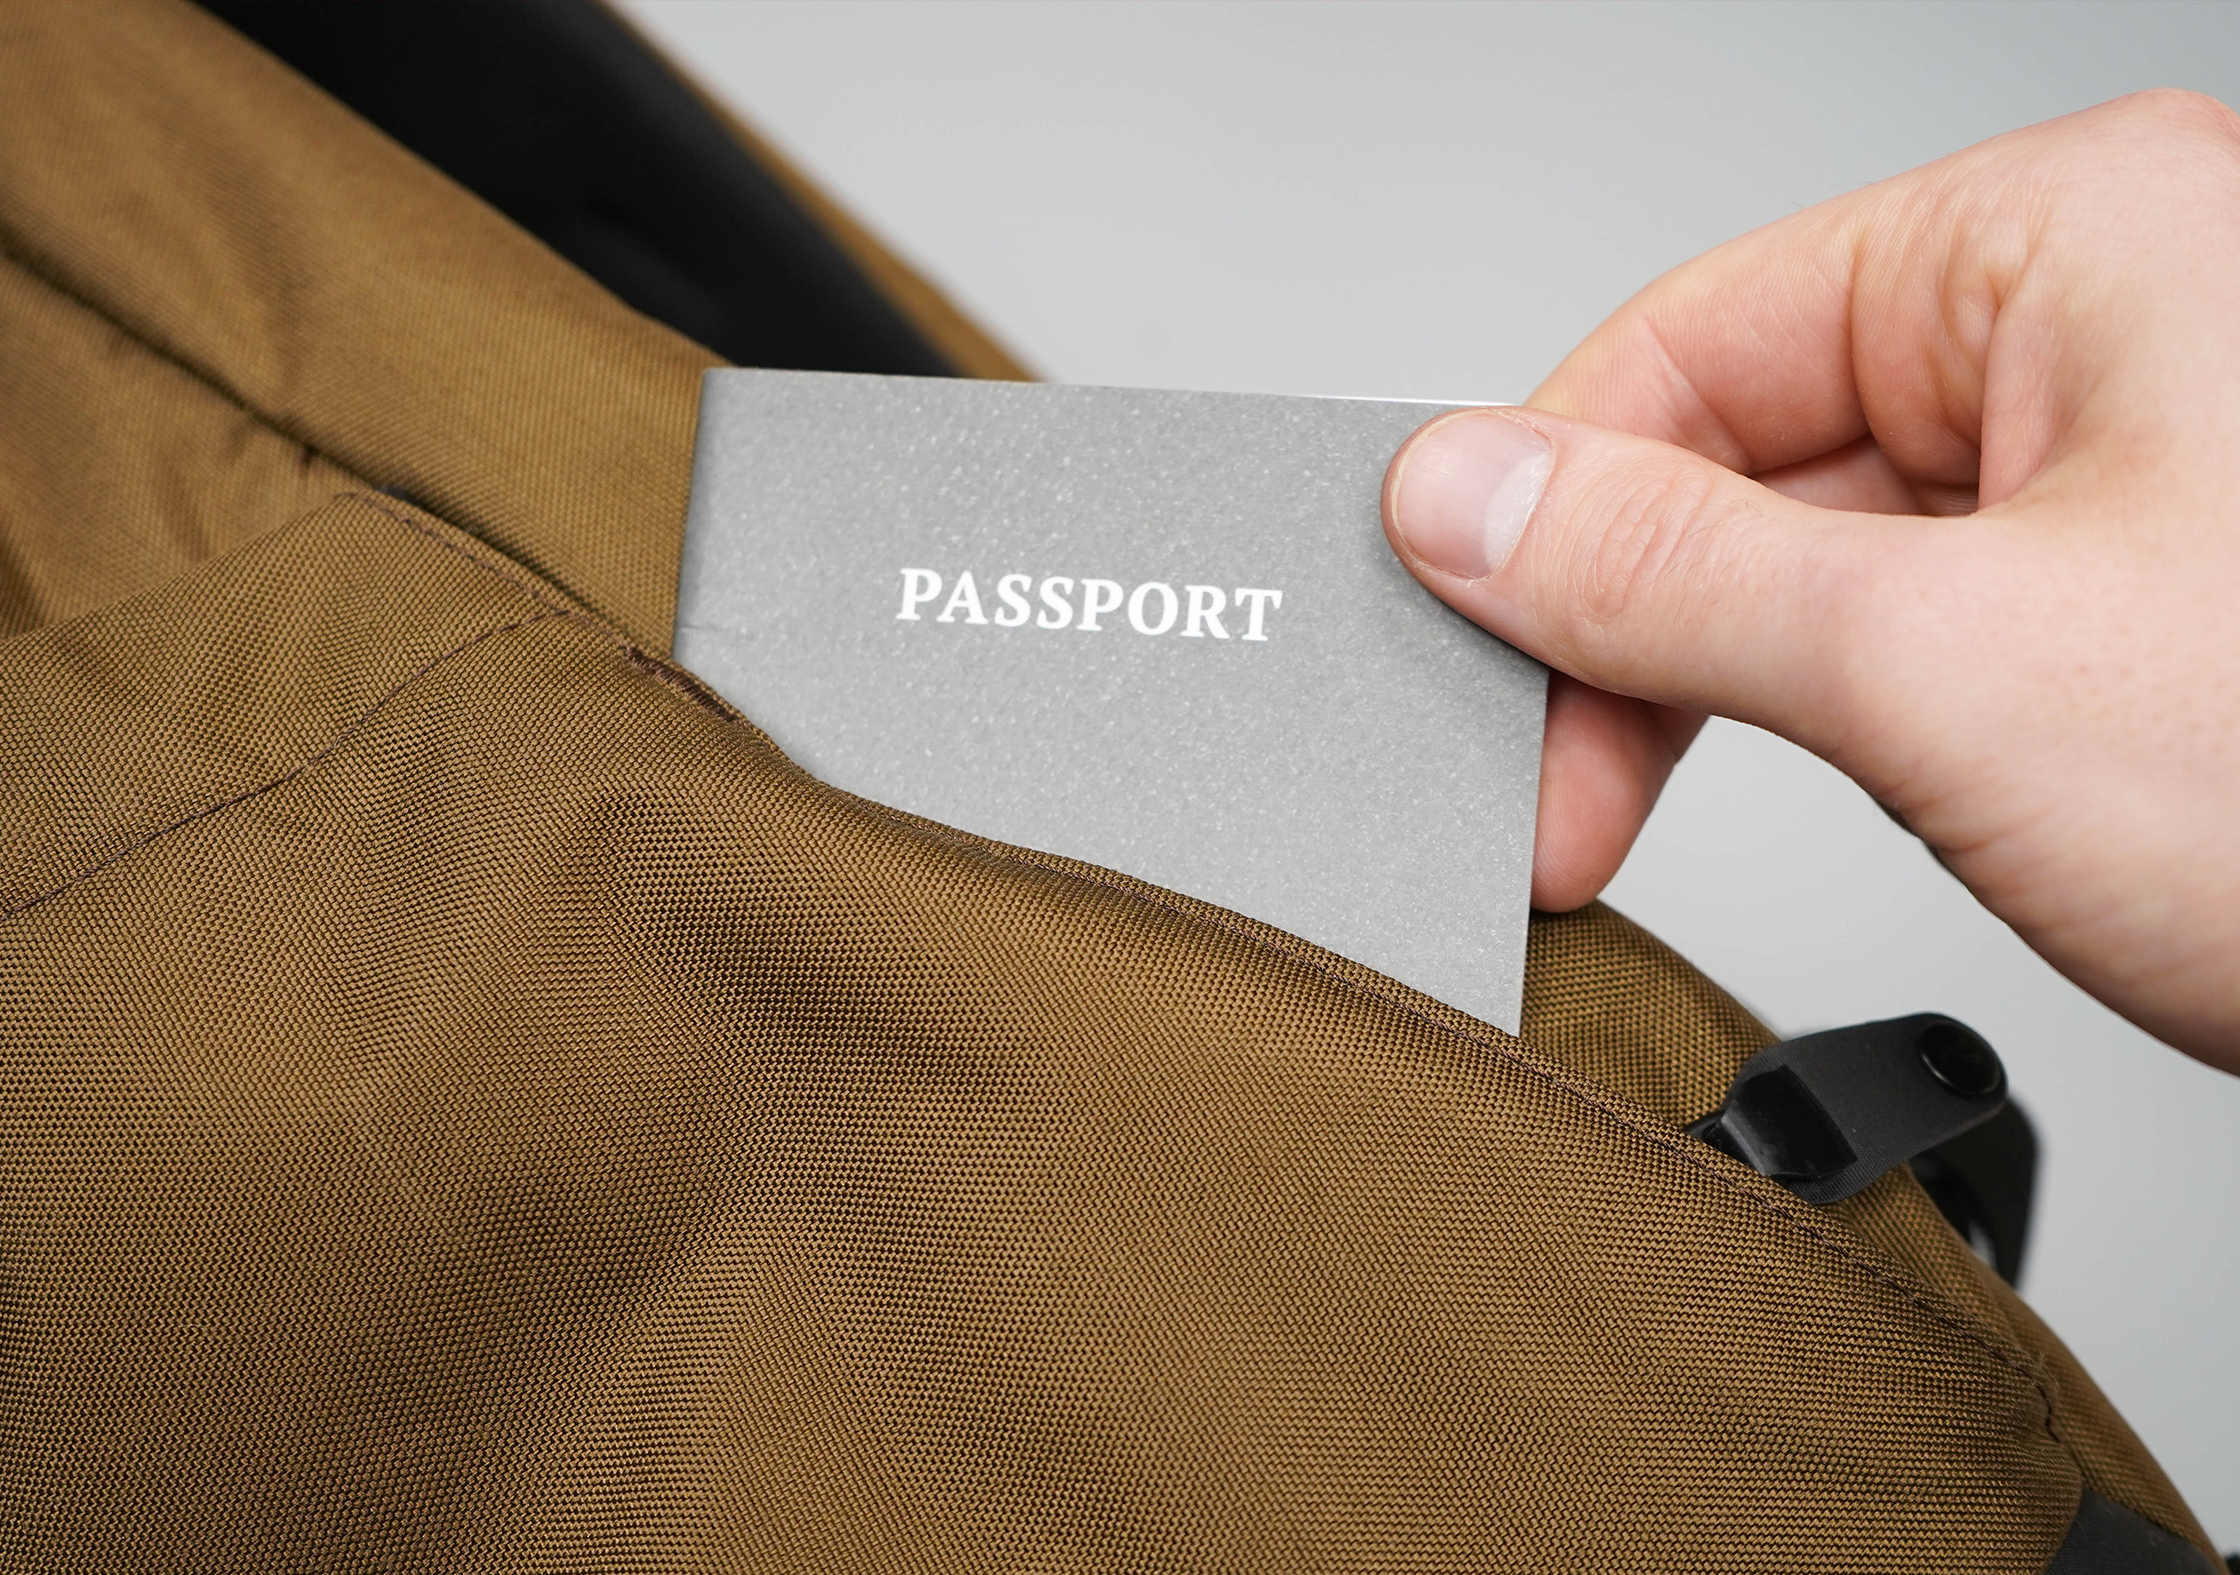 Boundary Supply Prima System Passport In Security Pocket